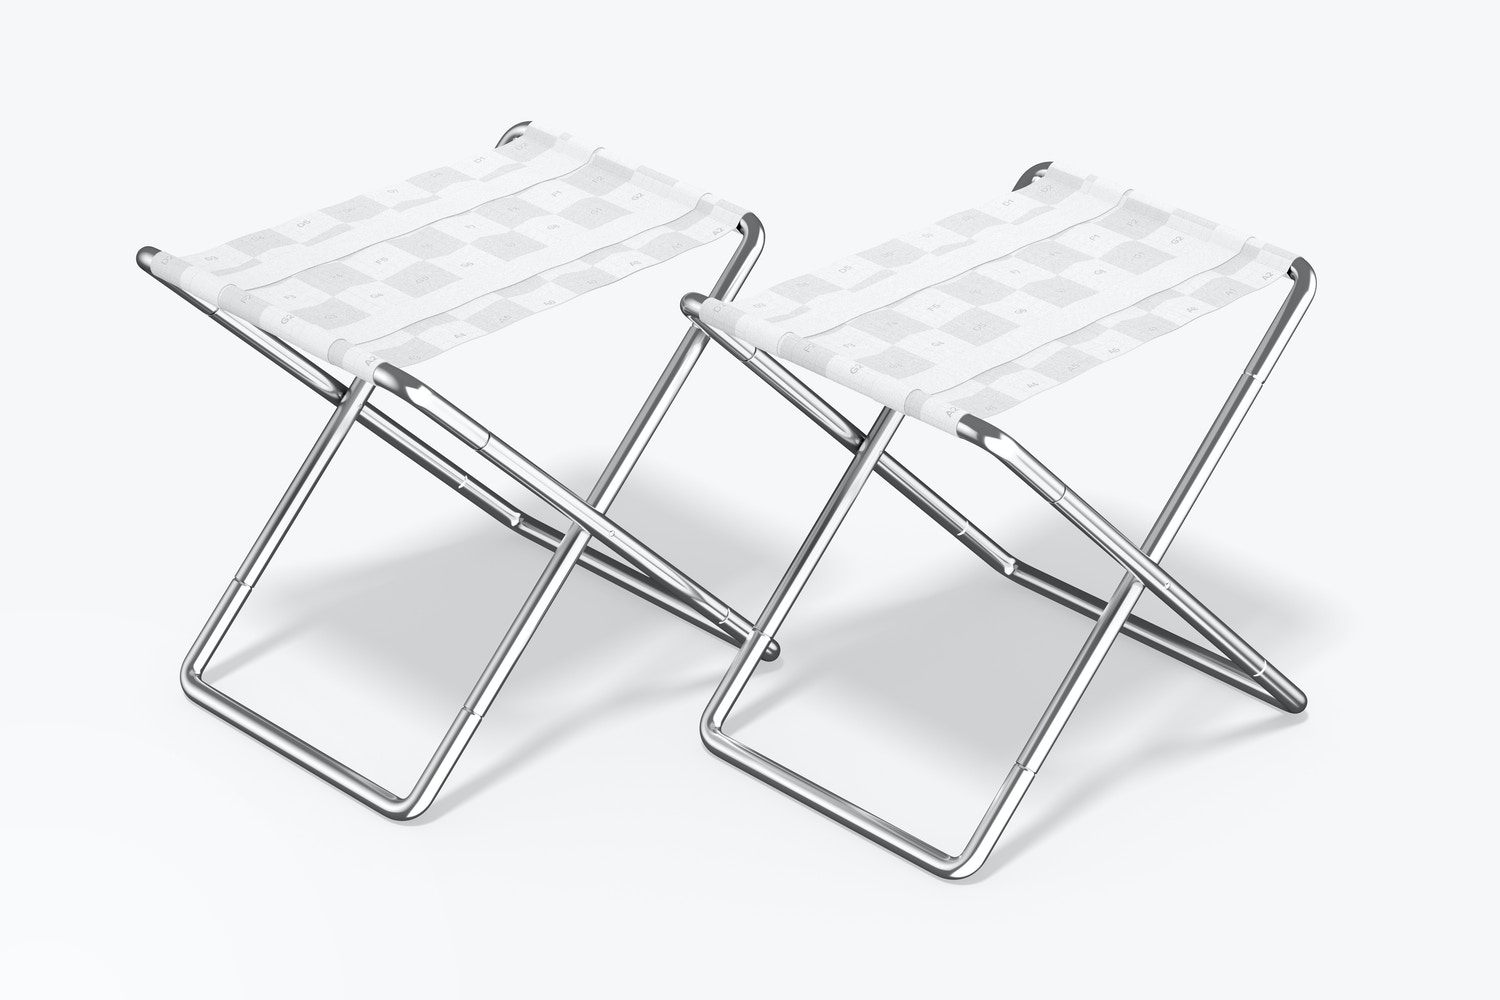 Folding Chairs Mockup, Right View